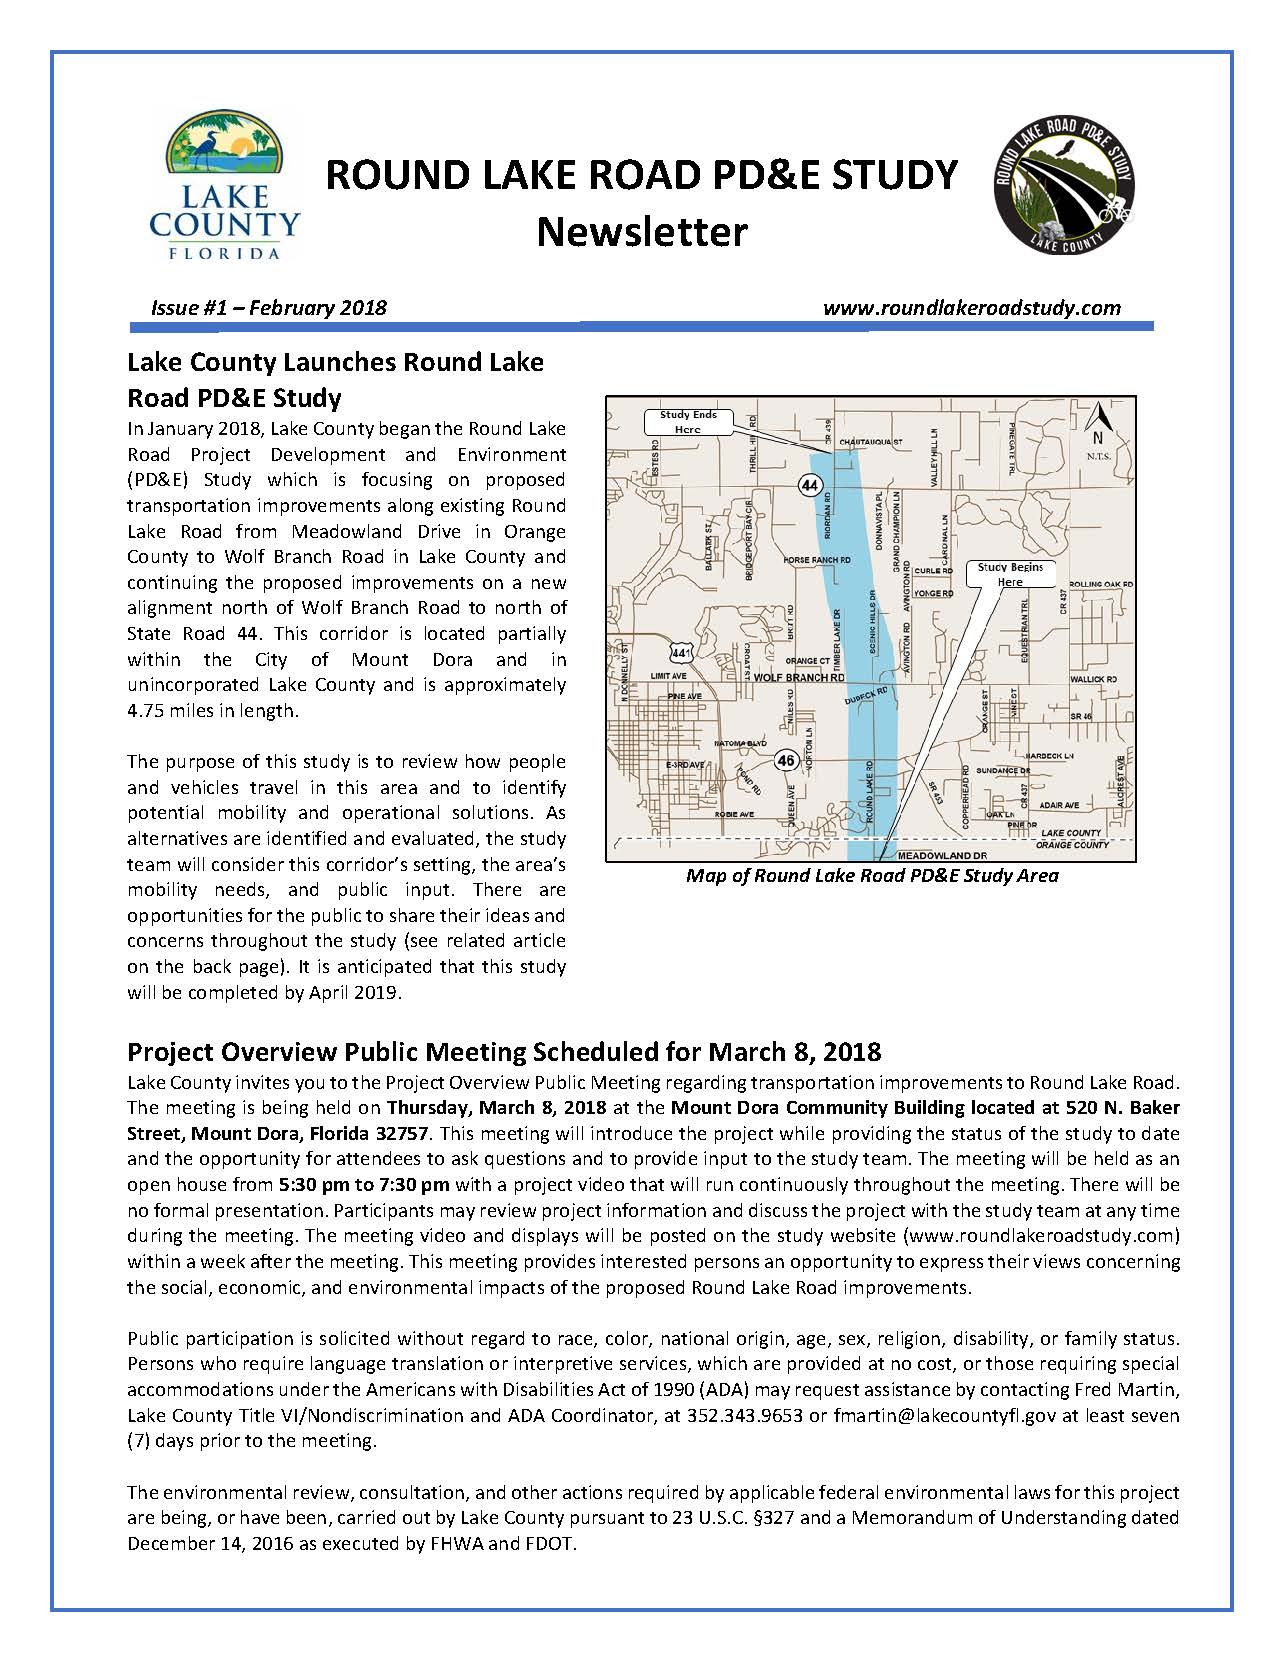 Round Lake Road Newsletter_Page_1